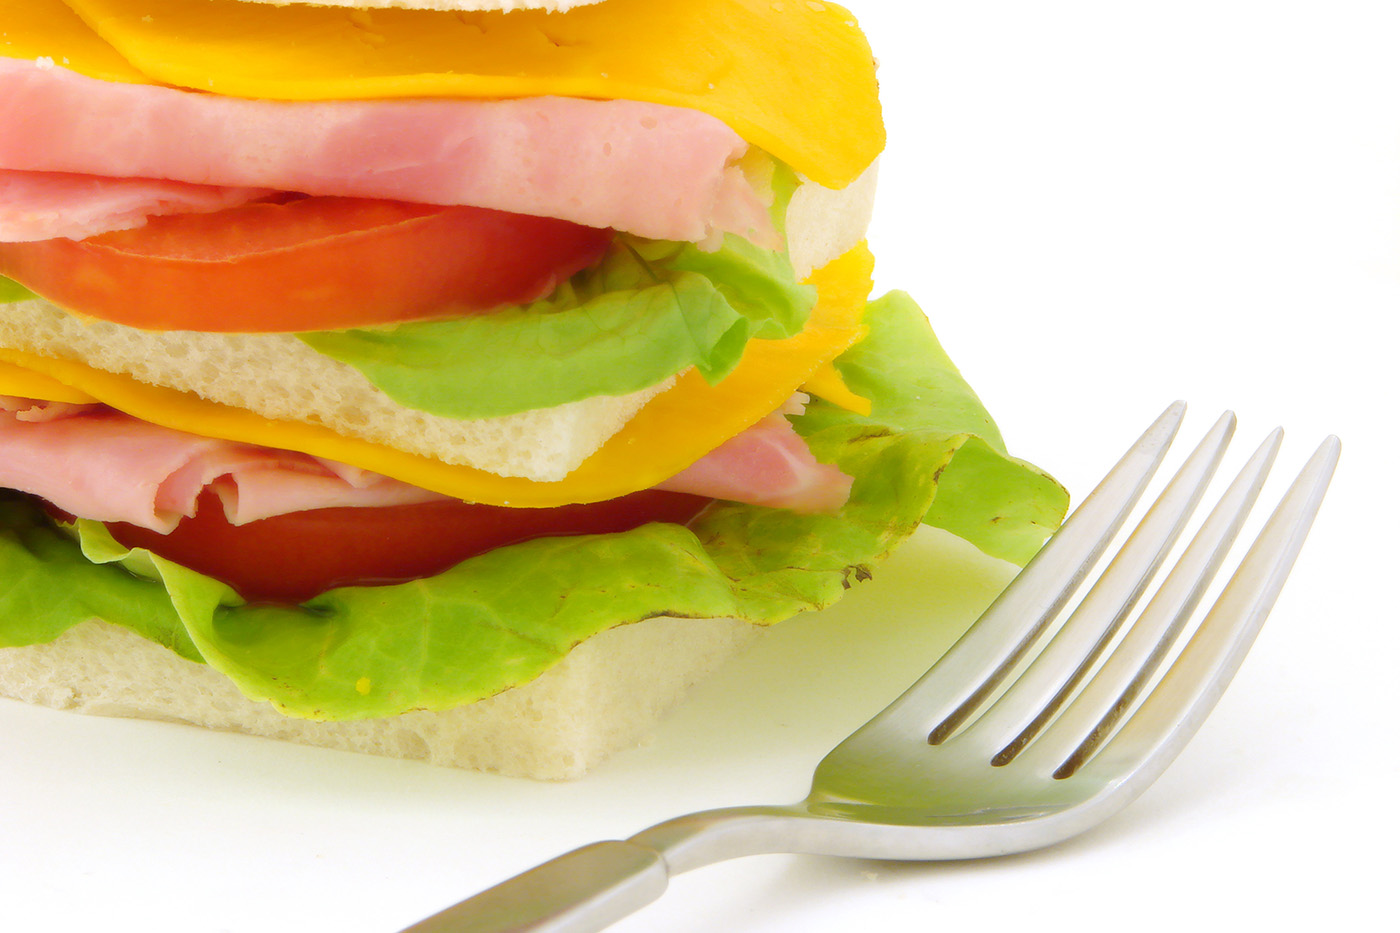 Slice of bread sandwich with a fork 50006